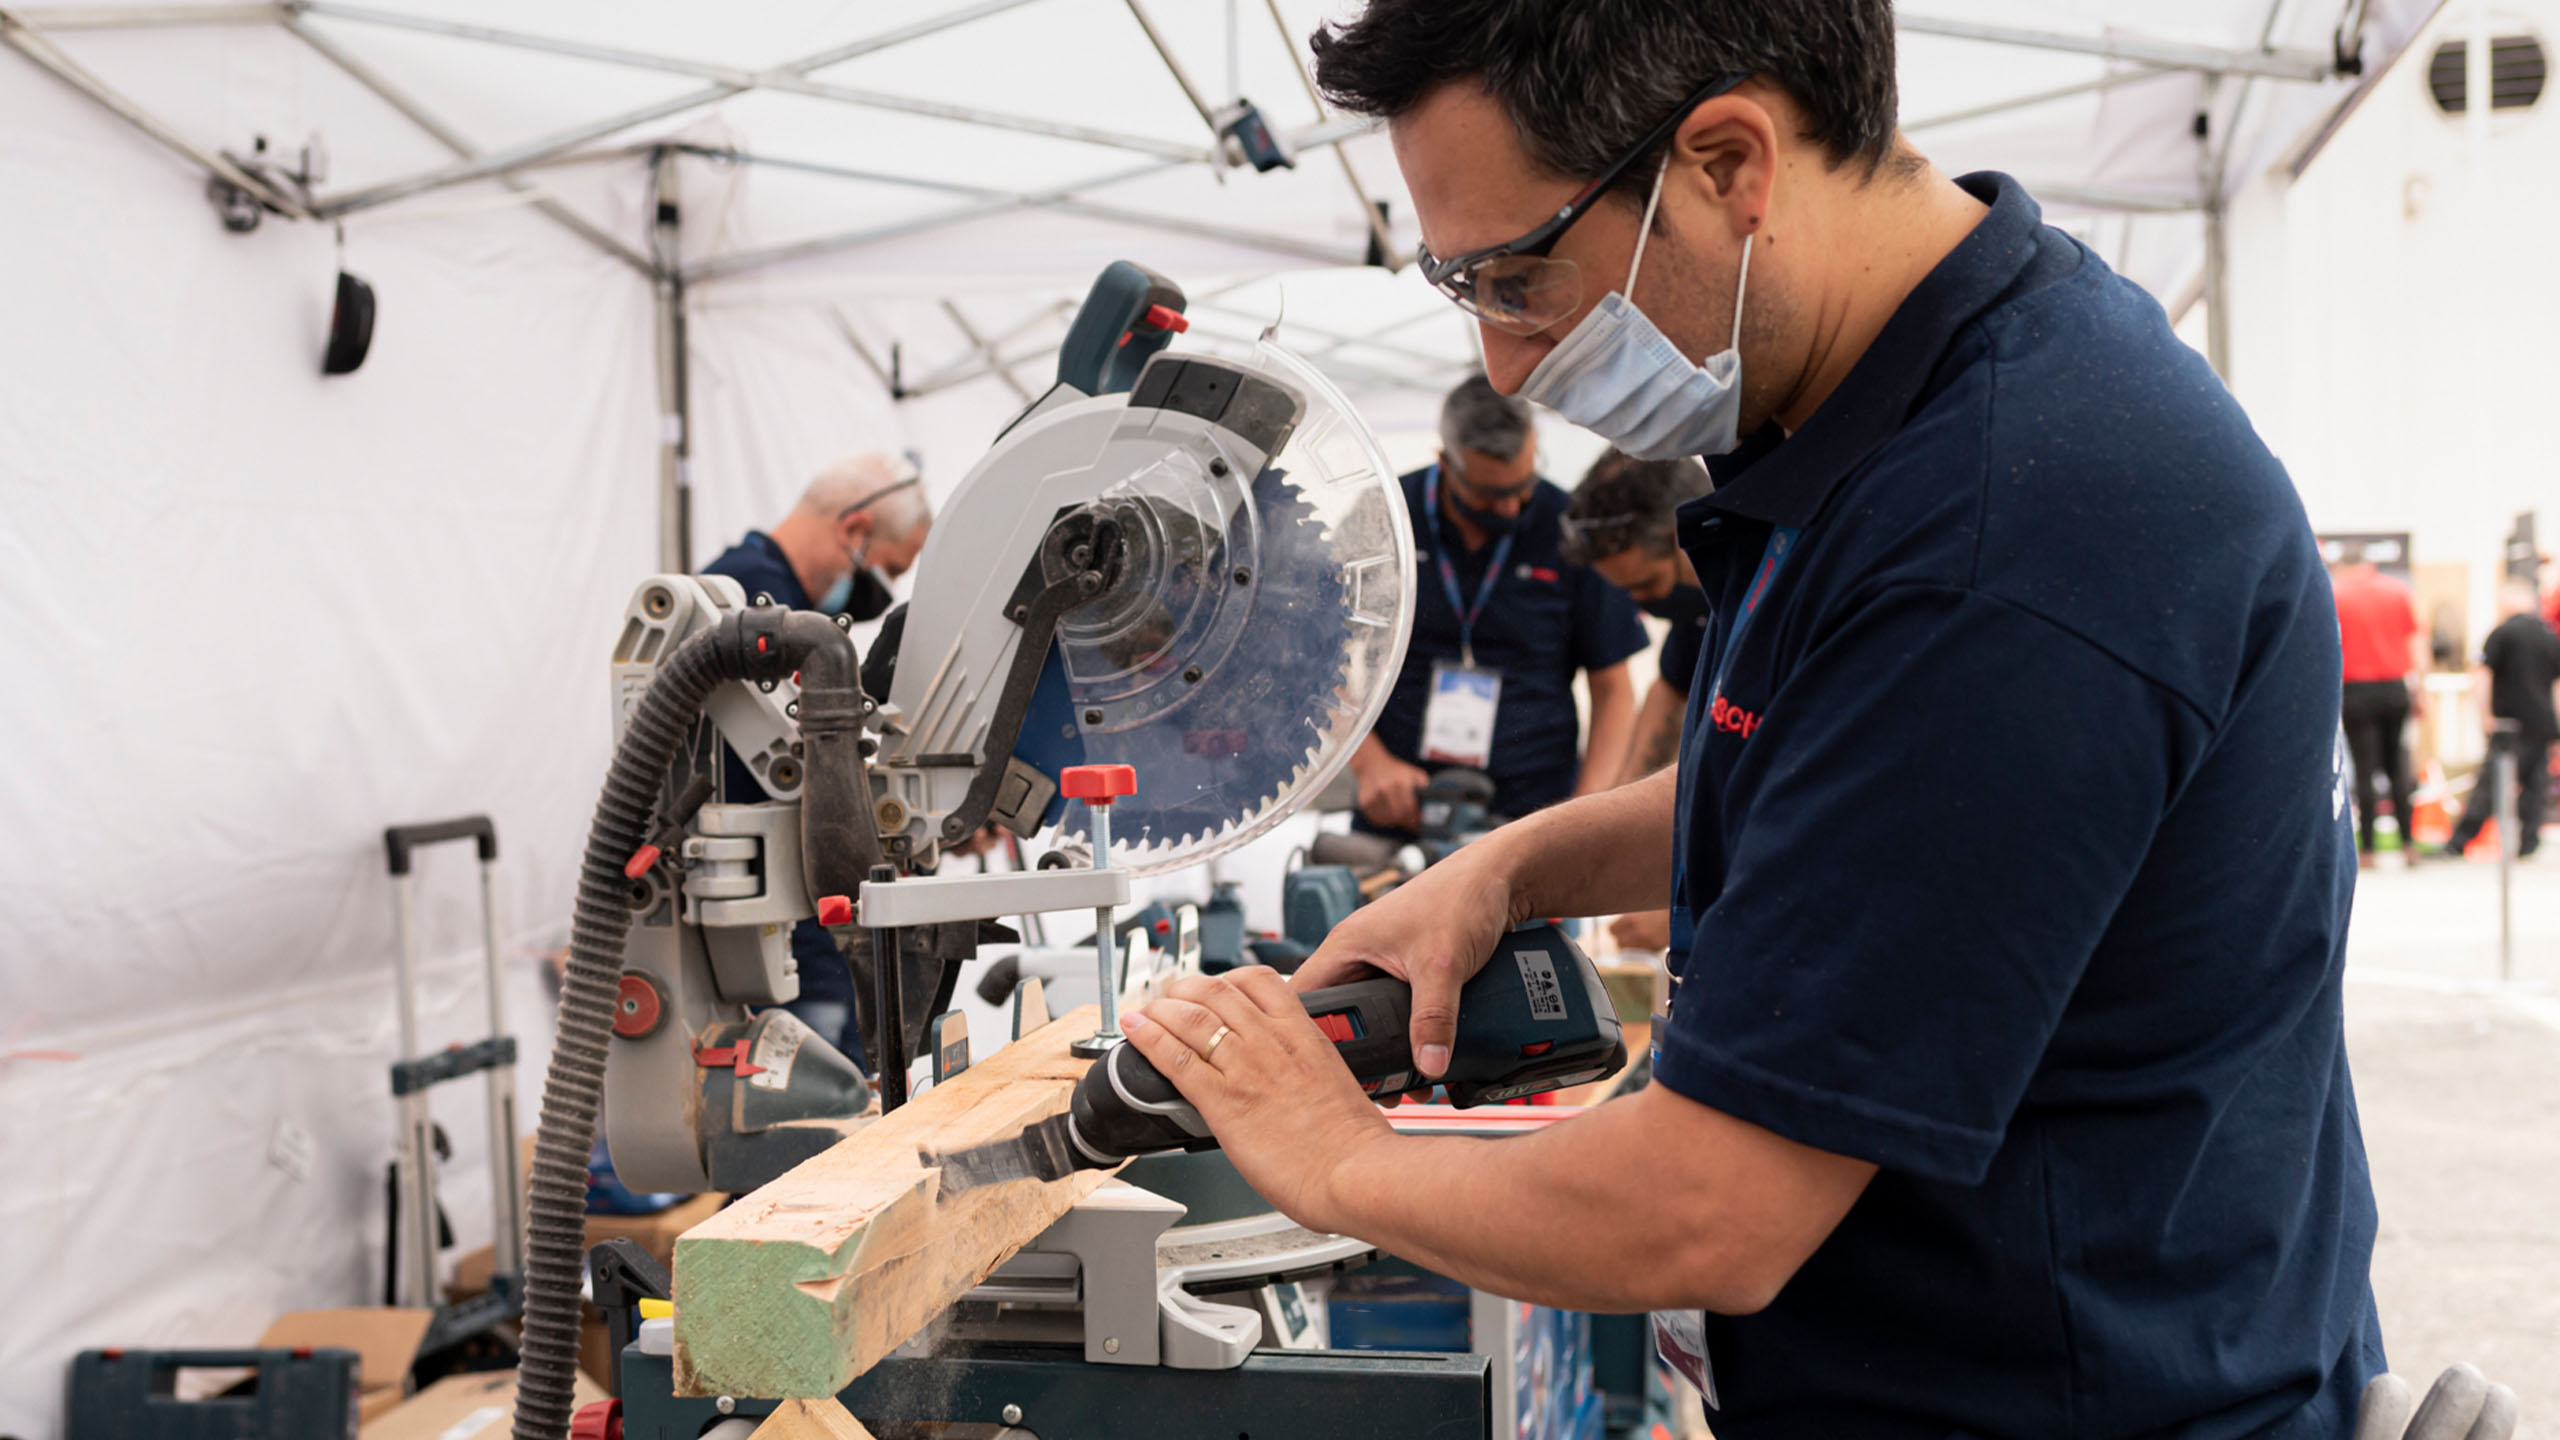 International Hardware, Plumbing Parts, Paint and Construction Materials Trade Fair